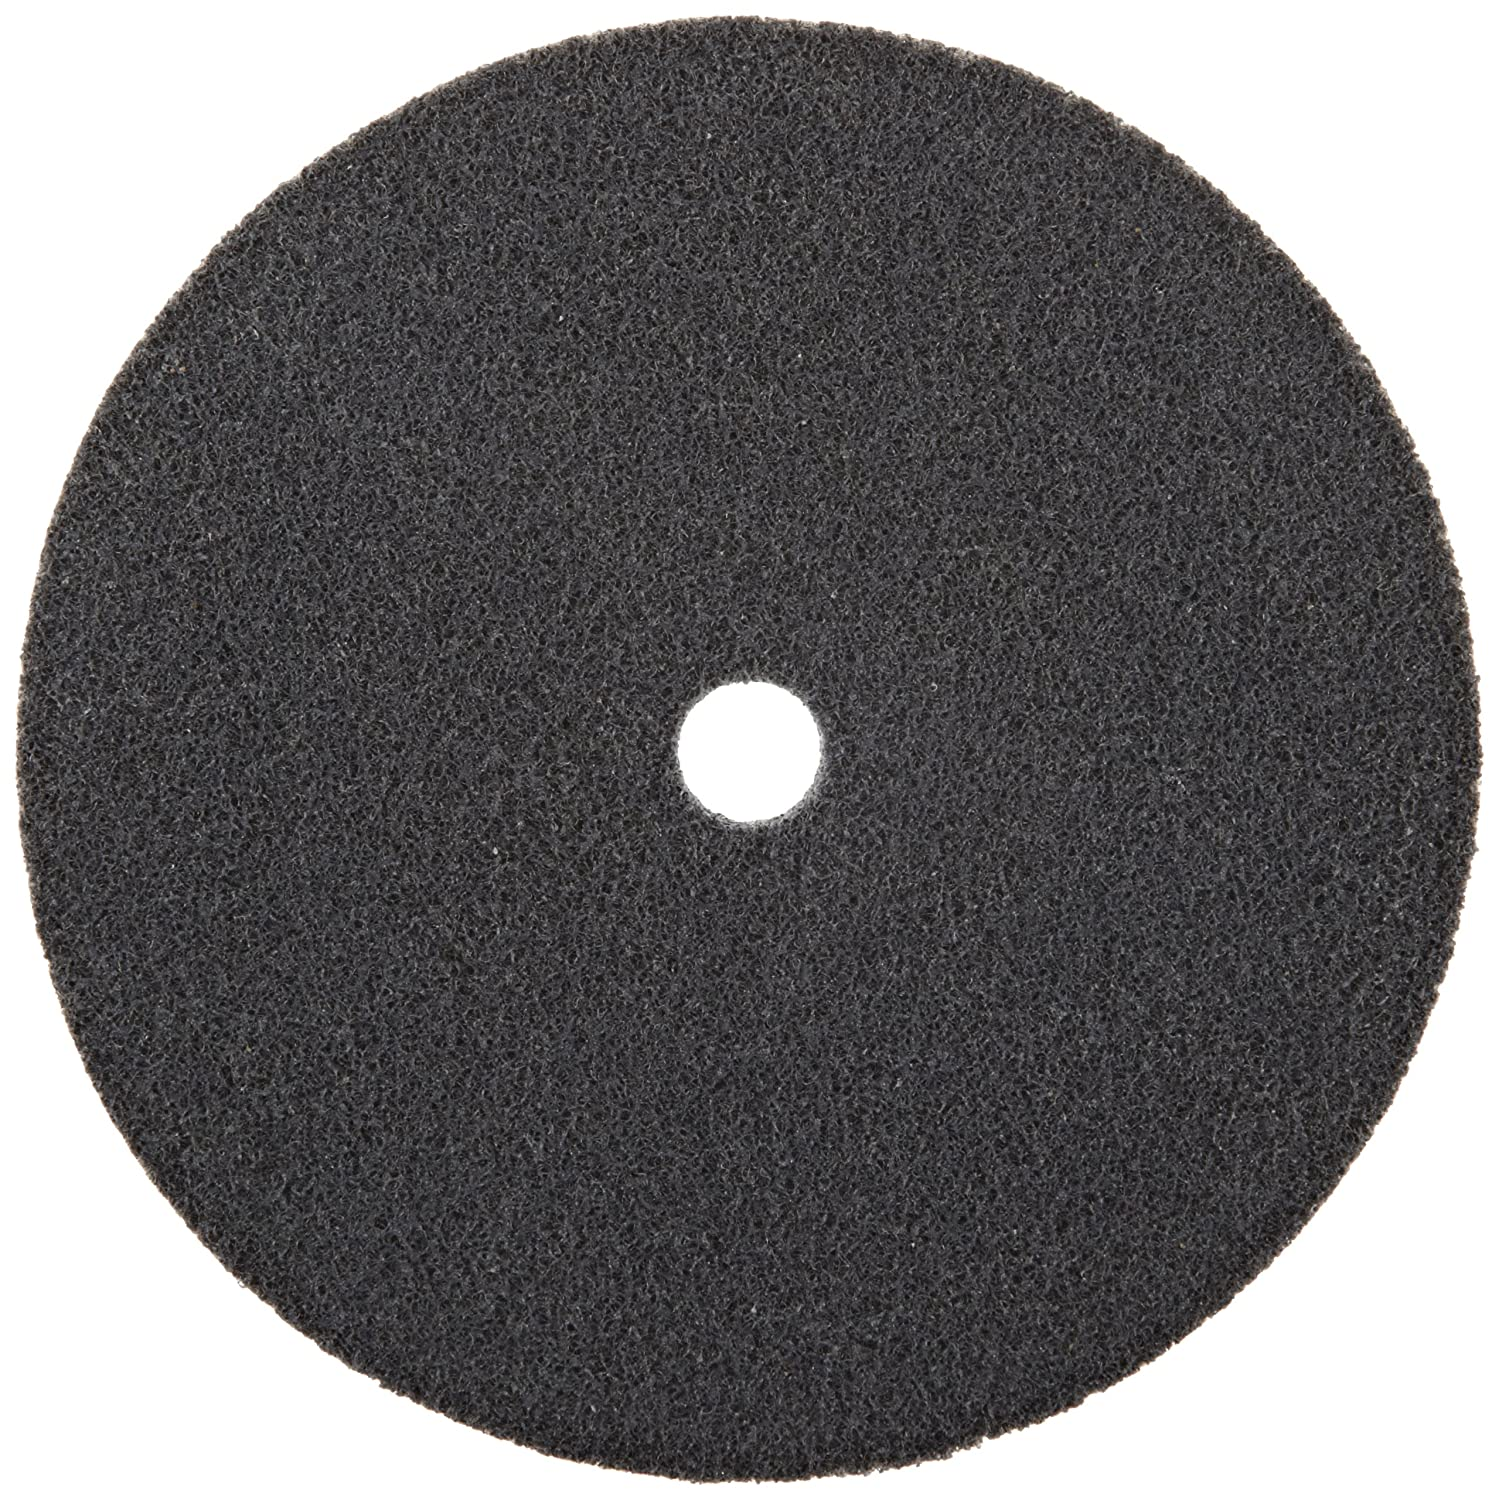 Abrasive Grit Scotch-Brite 18438 Cut and Polish Unitized Wheel 3 Diameter 18100 RPM 3 x 1//8 x 1//4 9A CRS